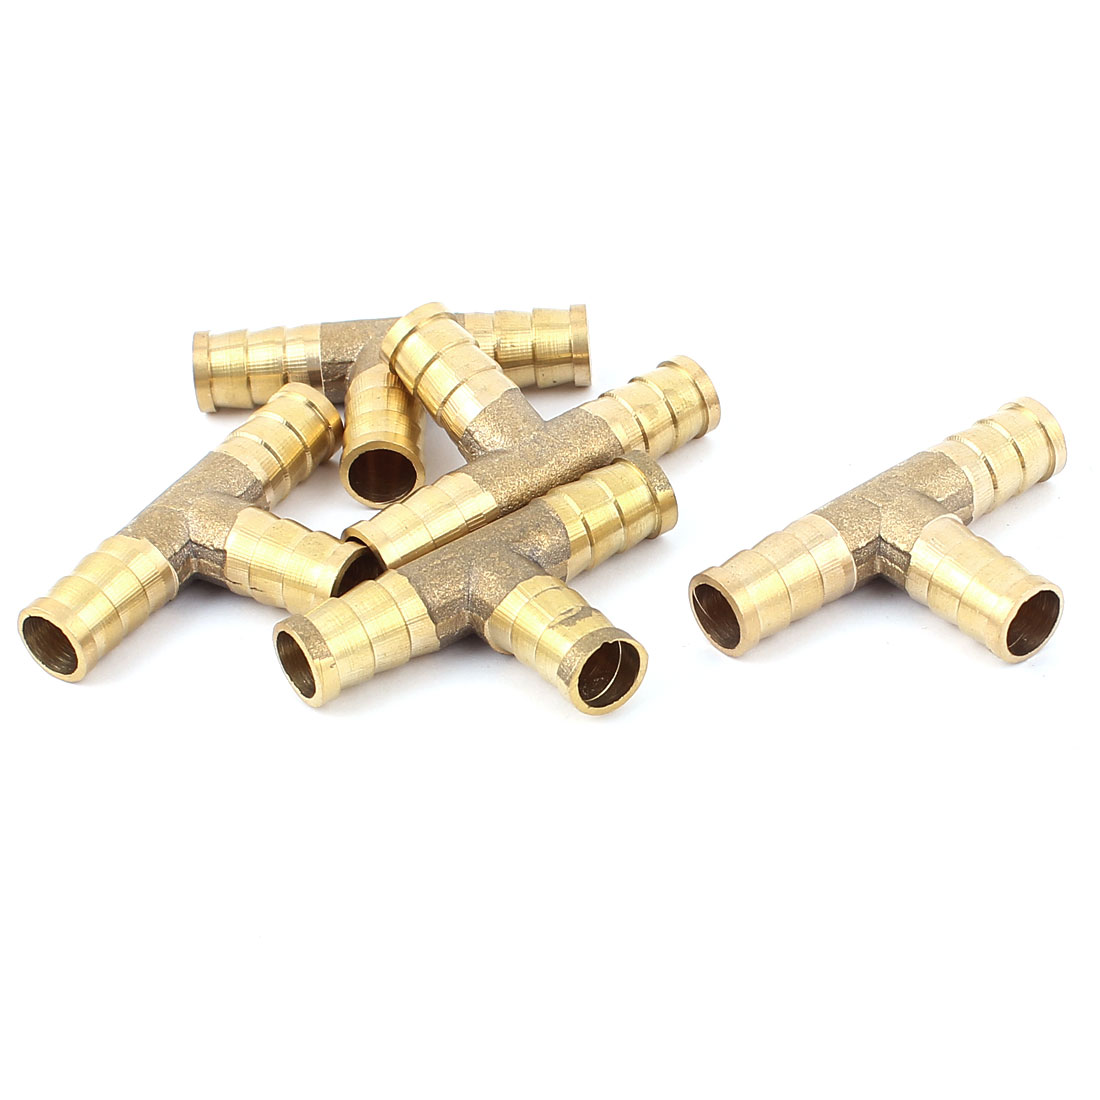 10mm Dia Tee T-Piece Pipe Hose 3 Way Joiner Connector Adapter Gold Tone 5Pcs